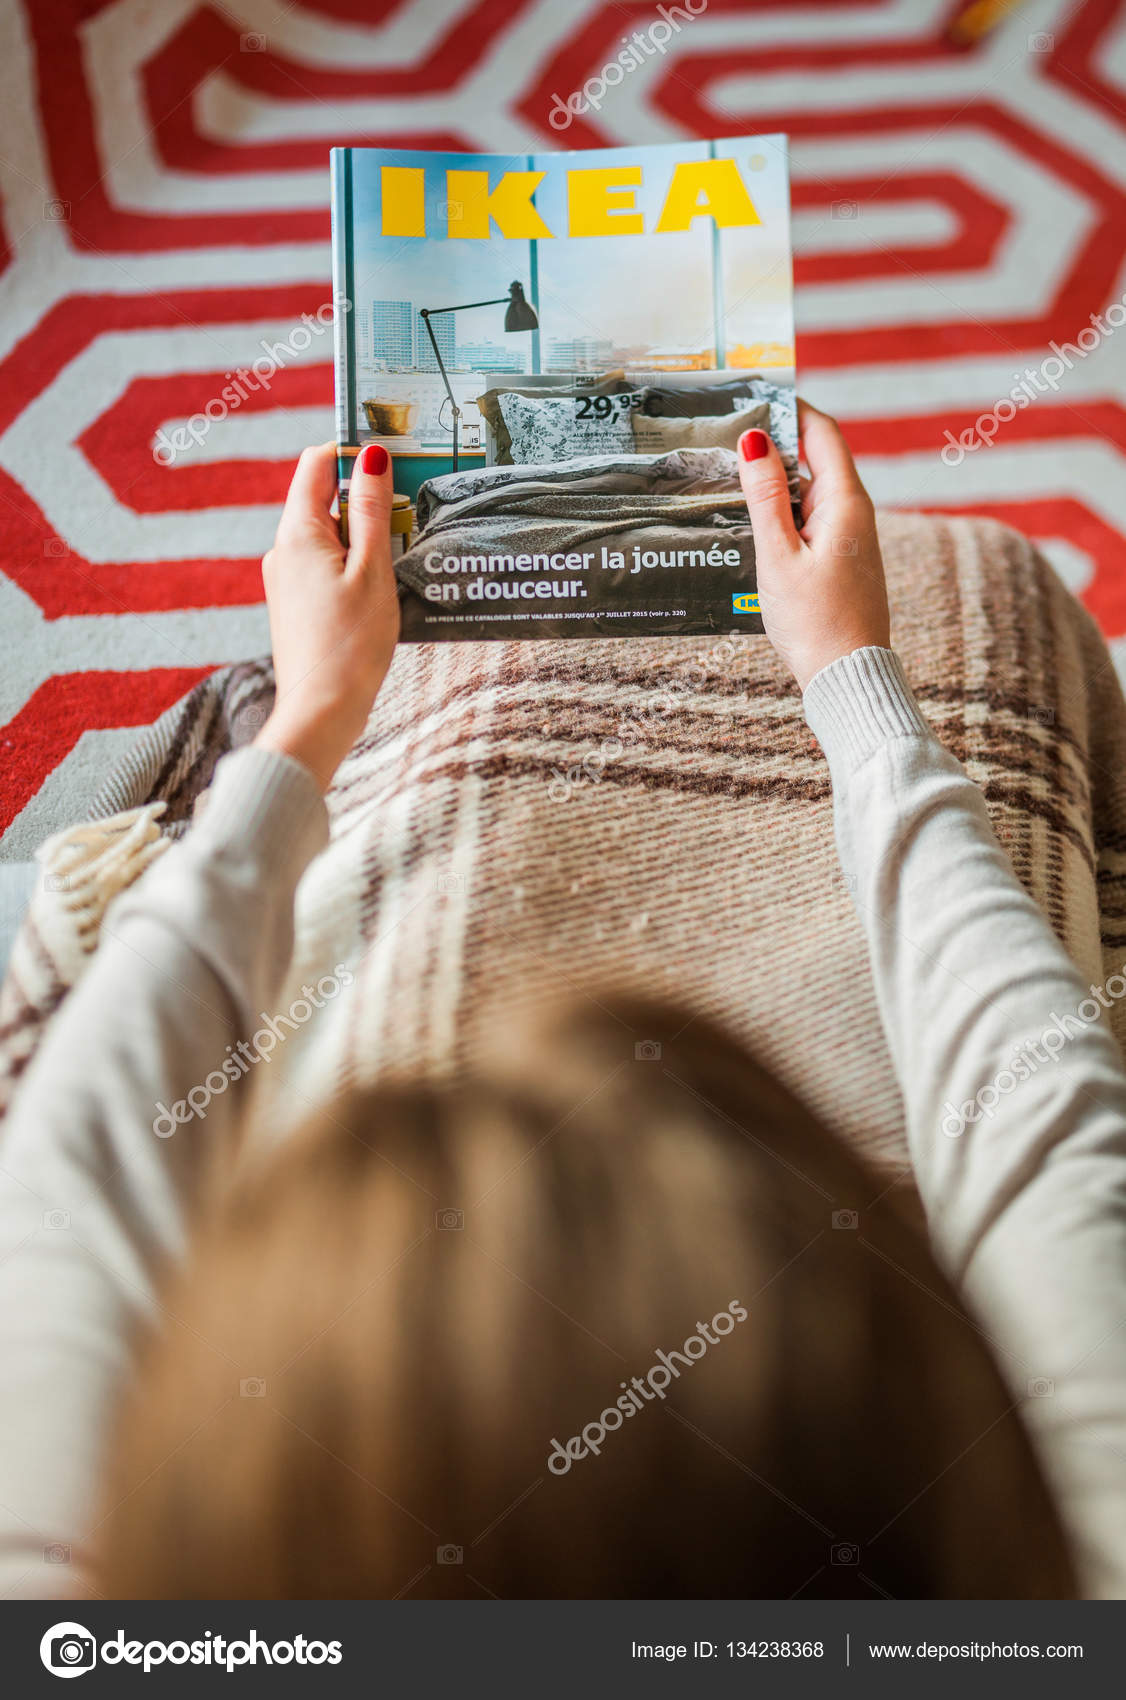 Download Ikea Catalog Woman Reading Ikea Catalog Cover Before Furnishing House